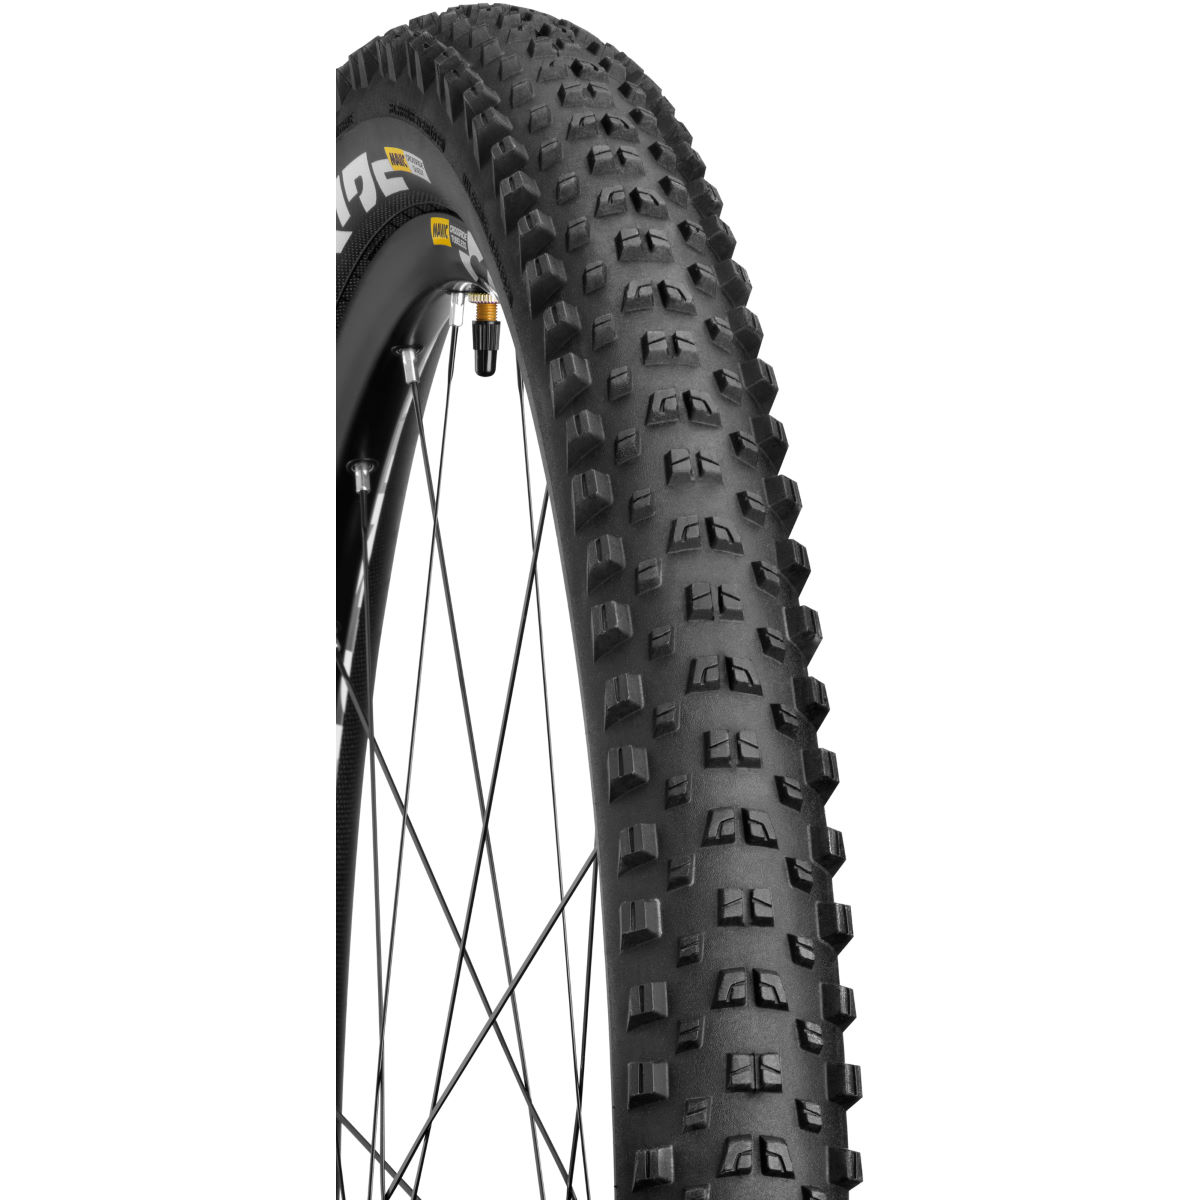 Pneu VTT Mavic Crossride Quest Tubeless 29 pouces - 29 x 2.35 29''